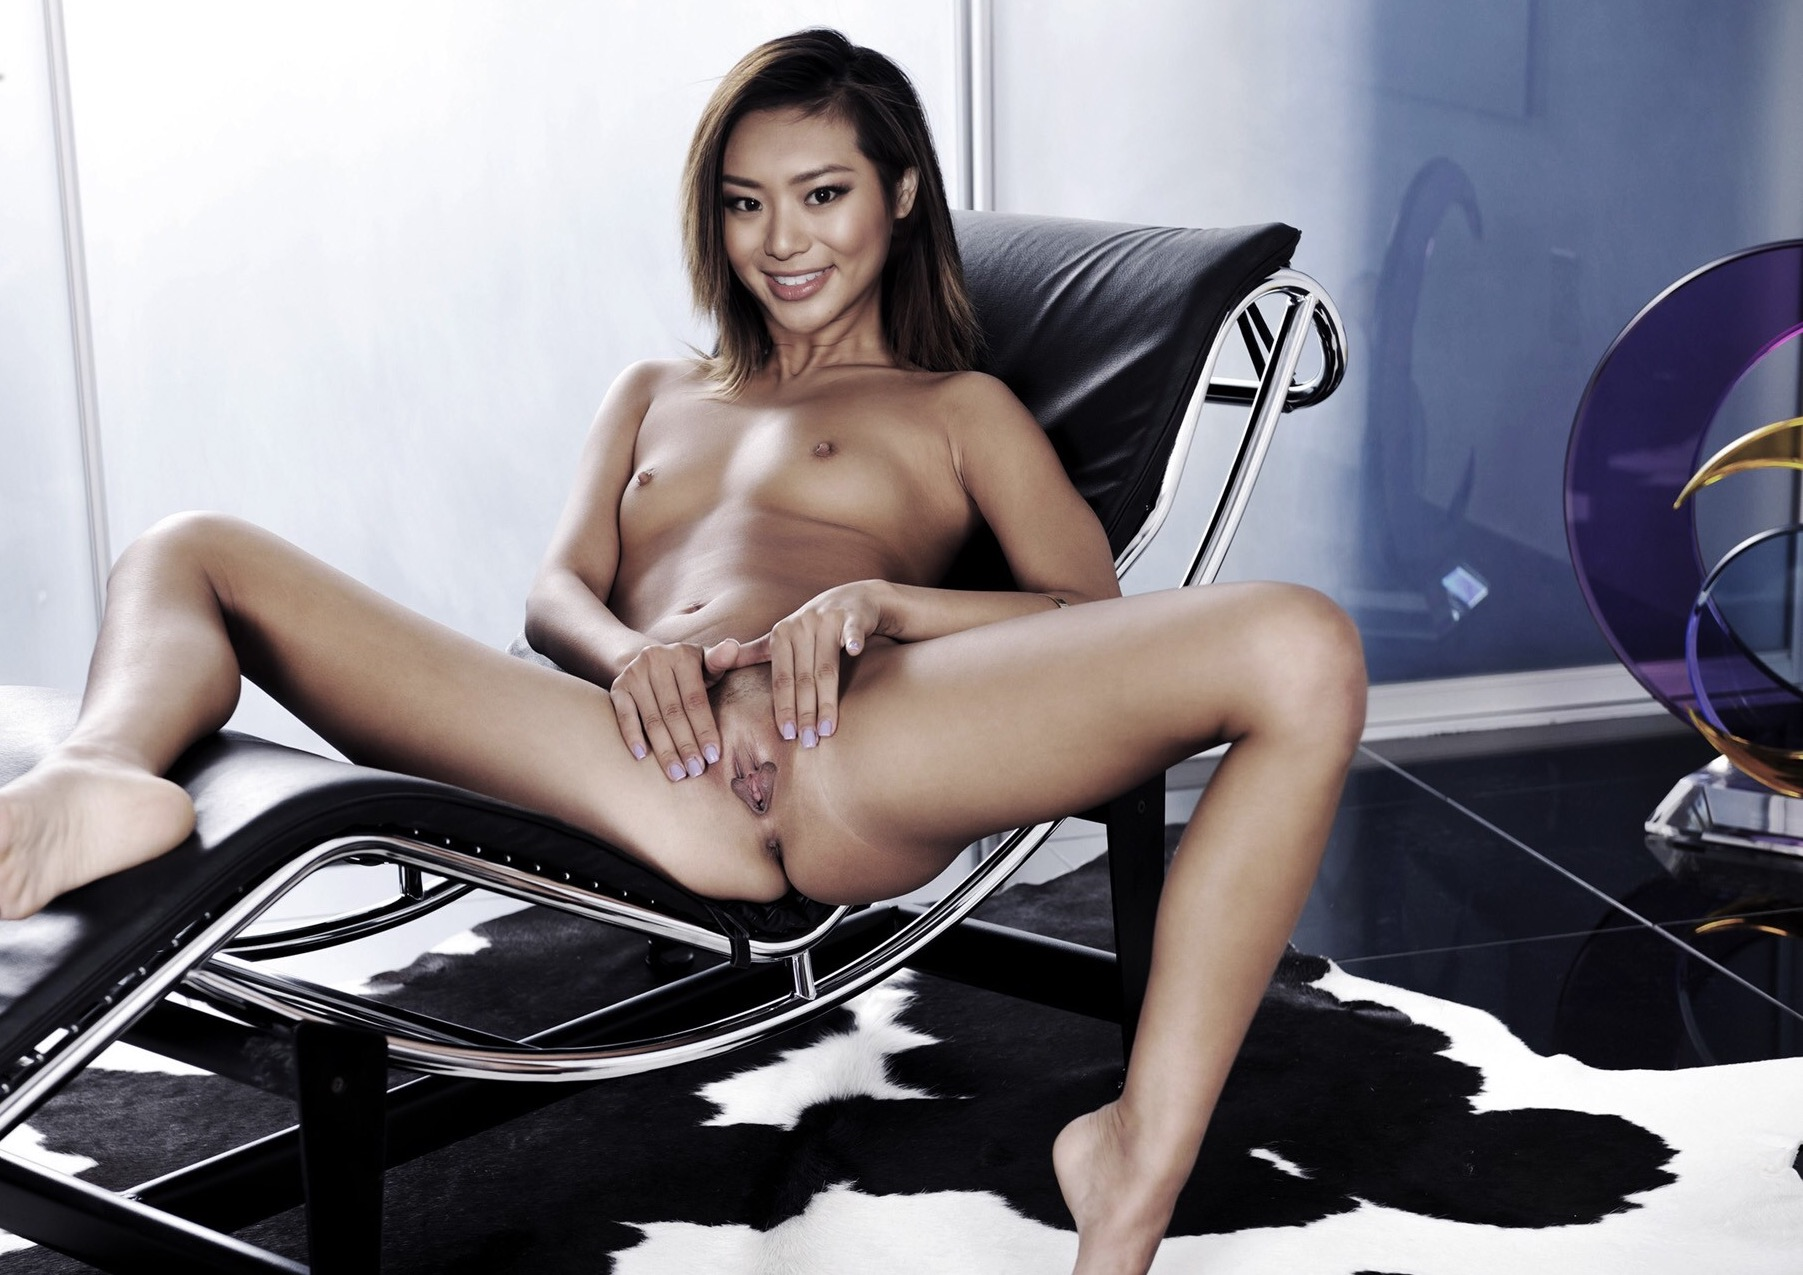 Chung jamie hot ass pussy you uneasy